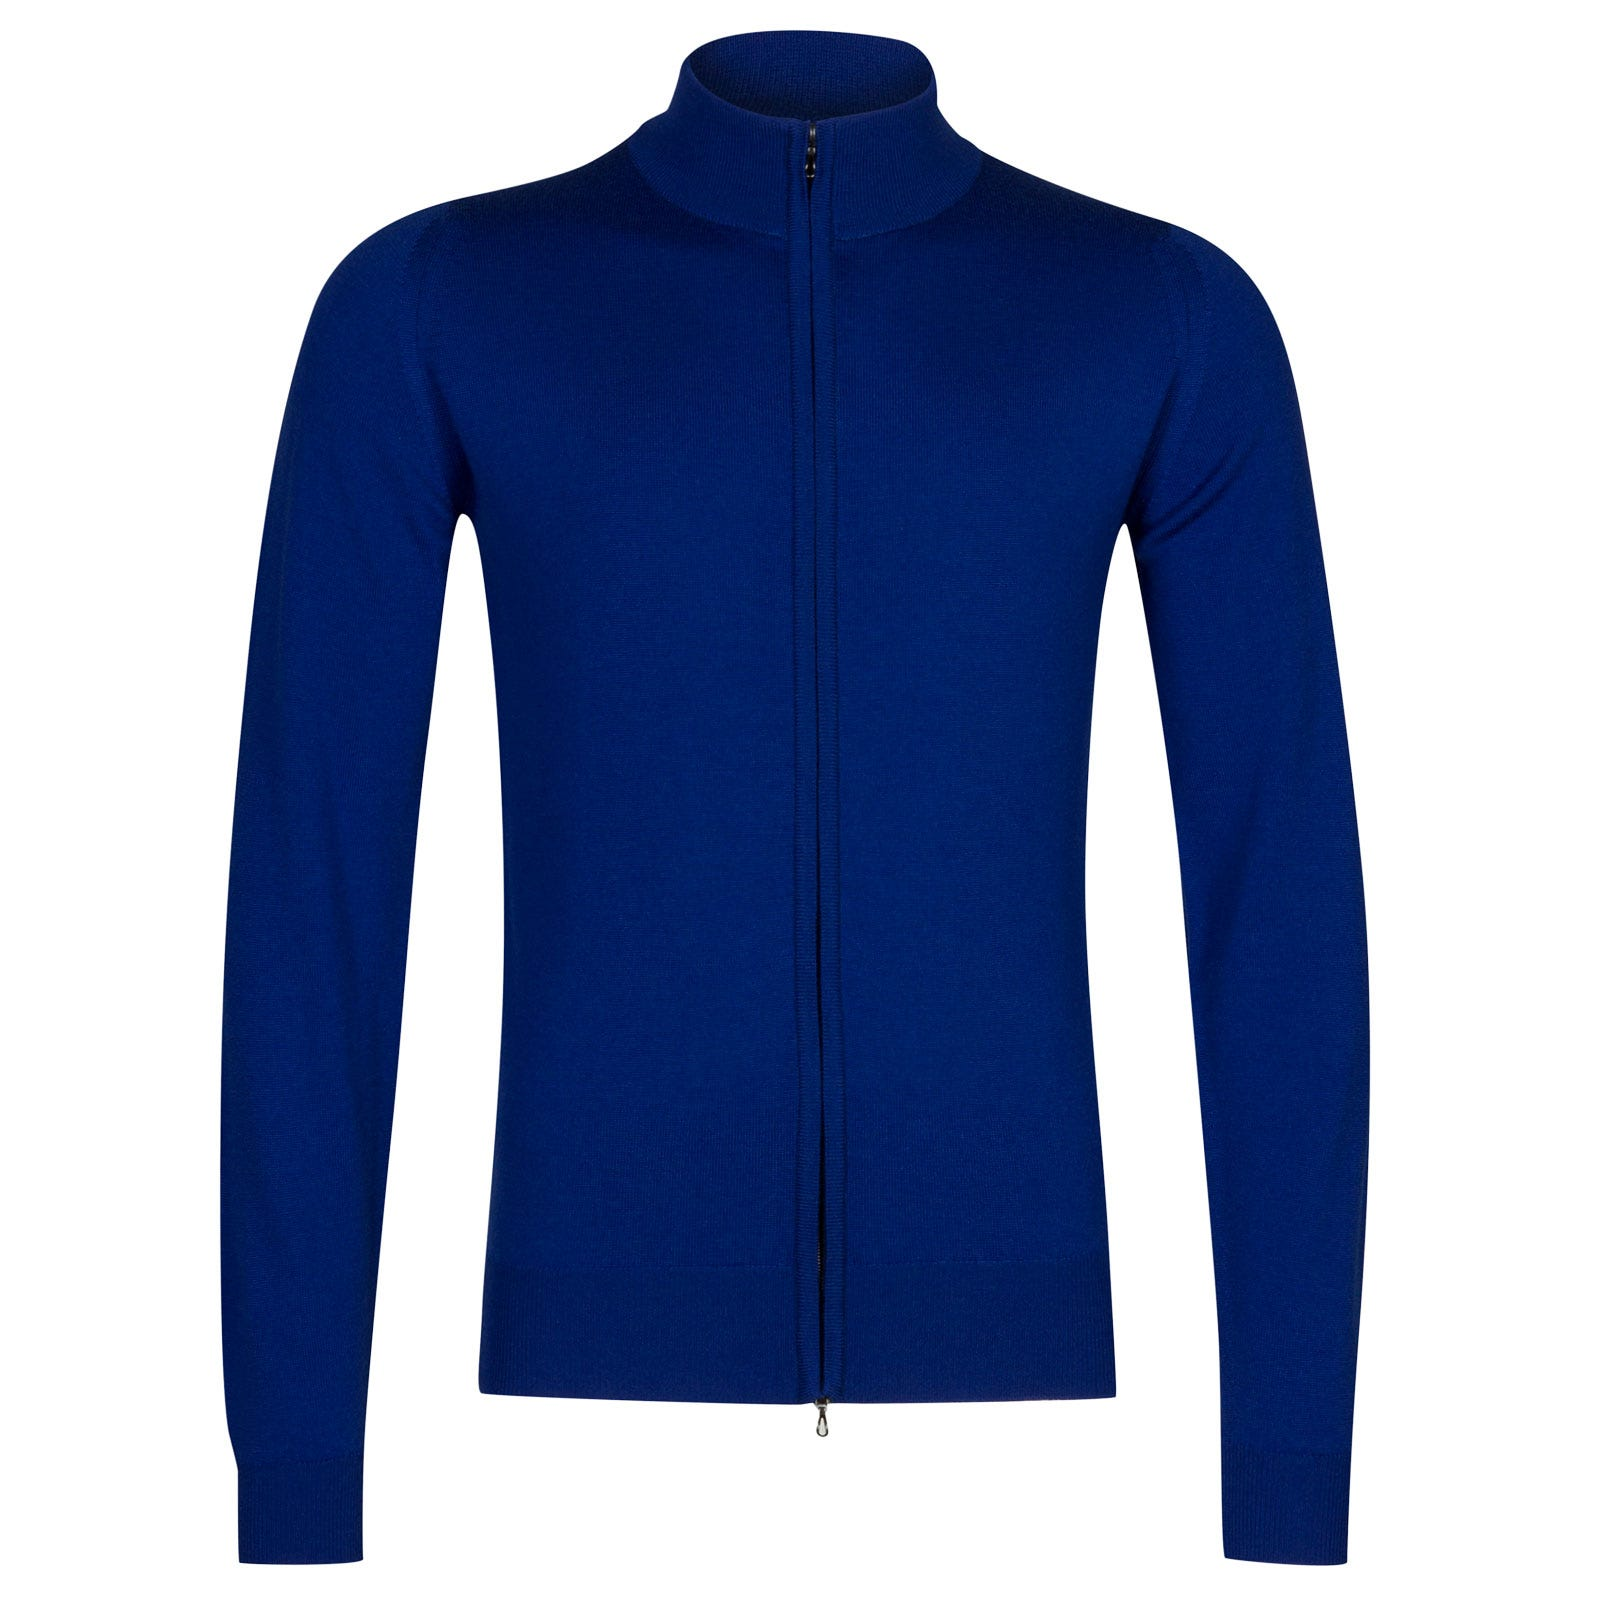 John Smedley claygate Merino Wool Jacket in Coniston Blue-XXL